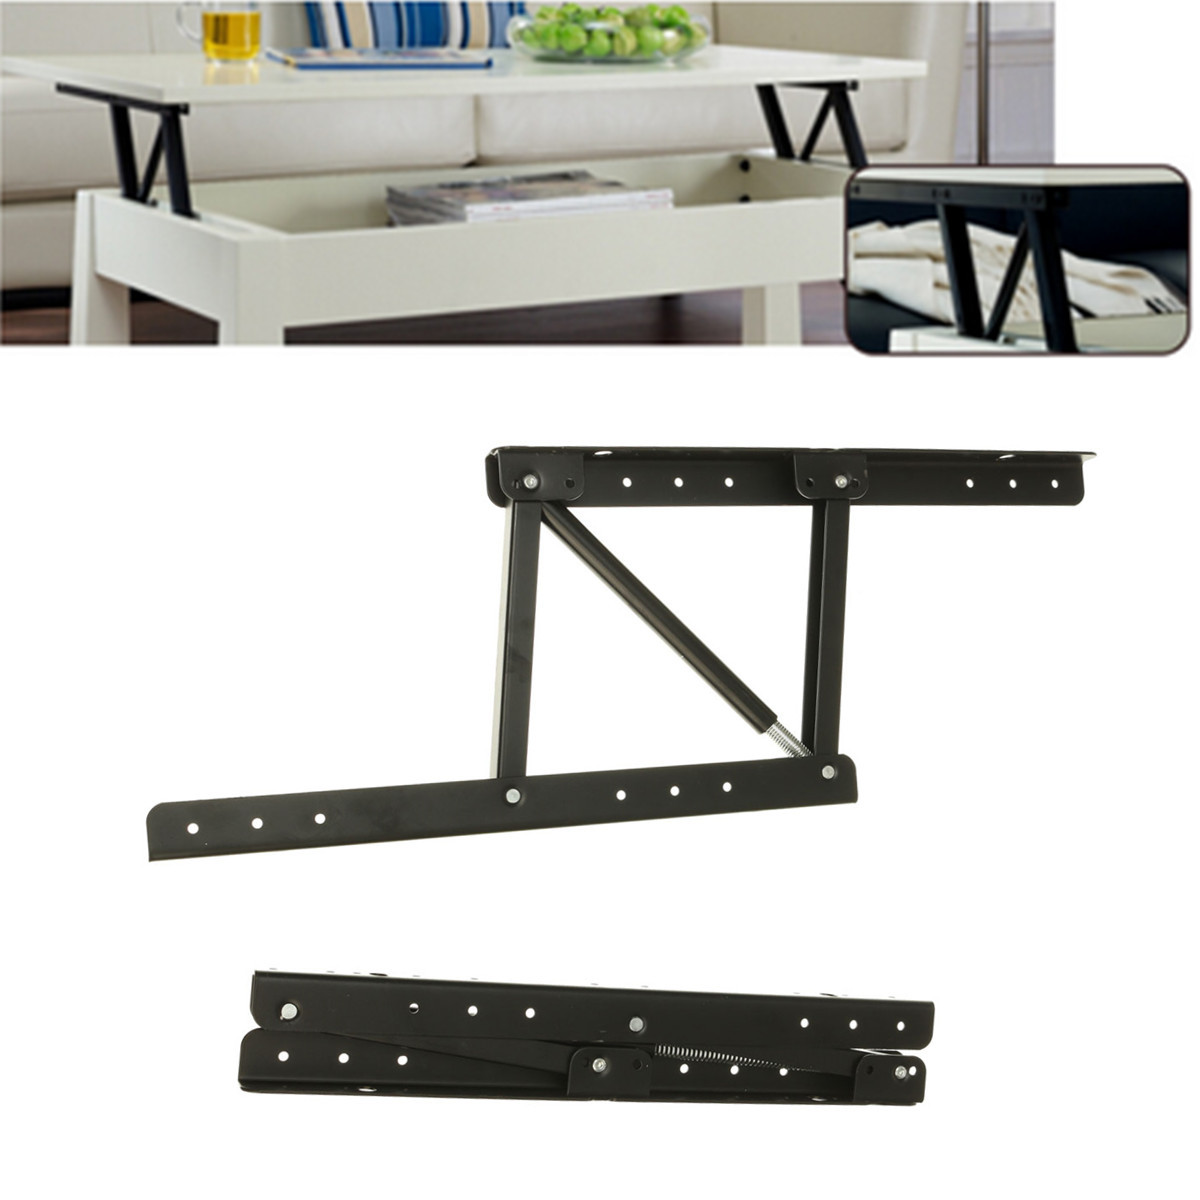 Lift Up Top Coffee Table DIY Hardware Fitting Furniture Mechanism Hinge  Spring Tools